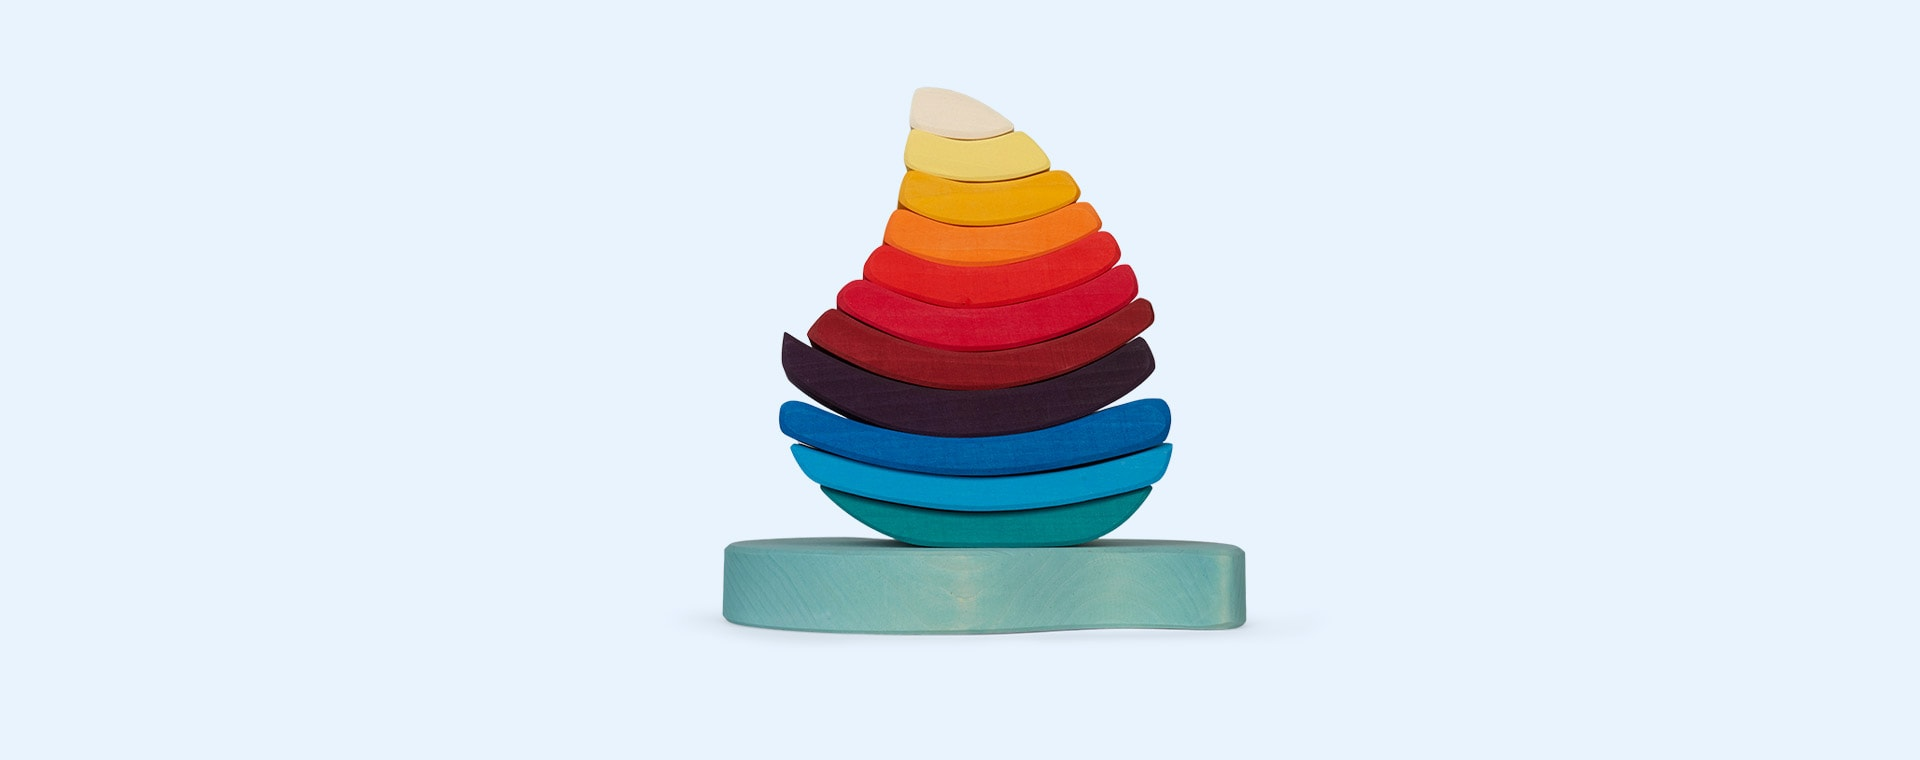 Rainbow Grimm's Boat Stacking Tower